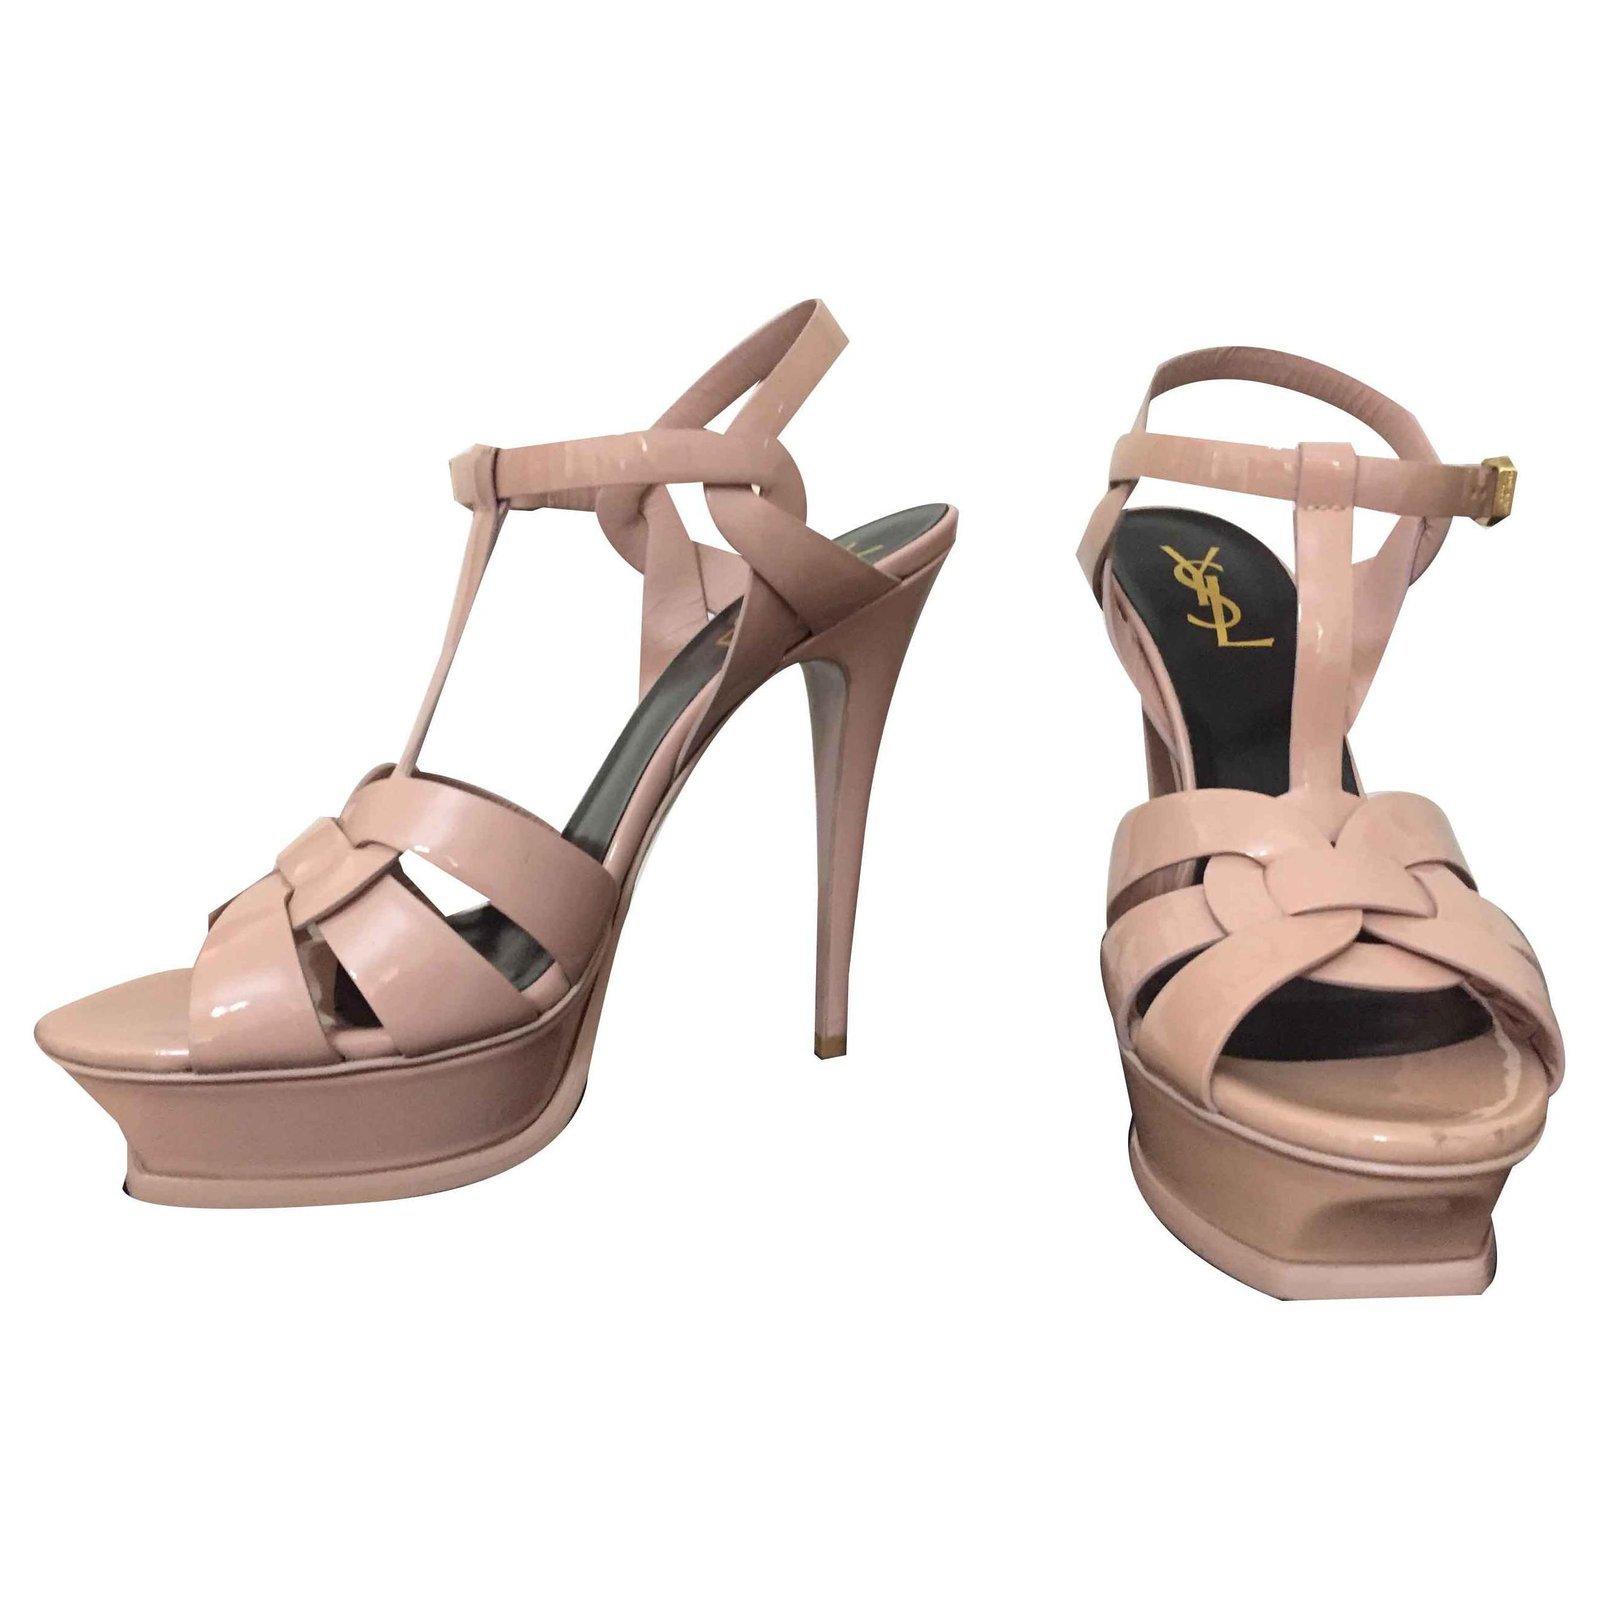 a011fb57d22 Yves Saint Laurent Tribute in patent leather Sandals Leather Pink ref.113686